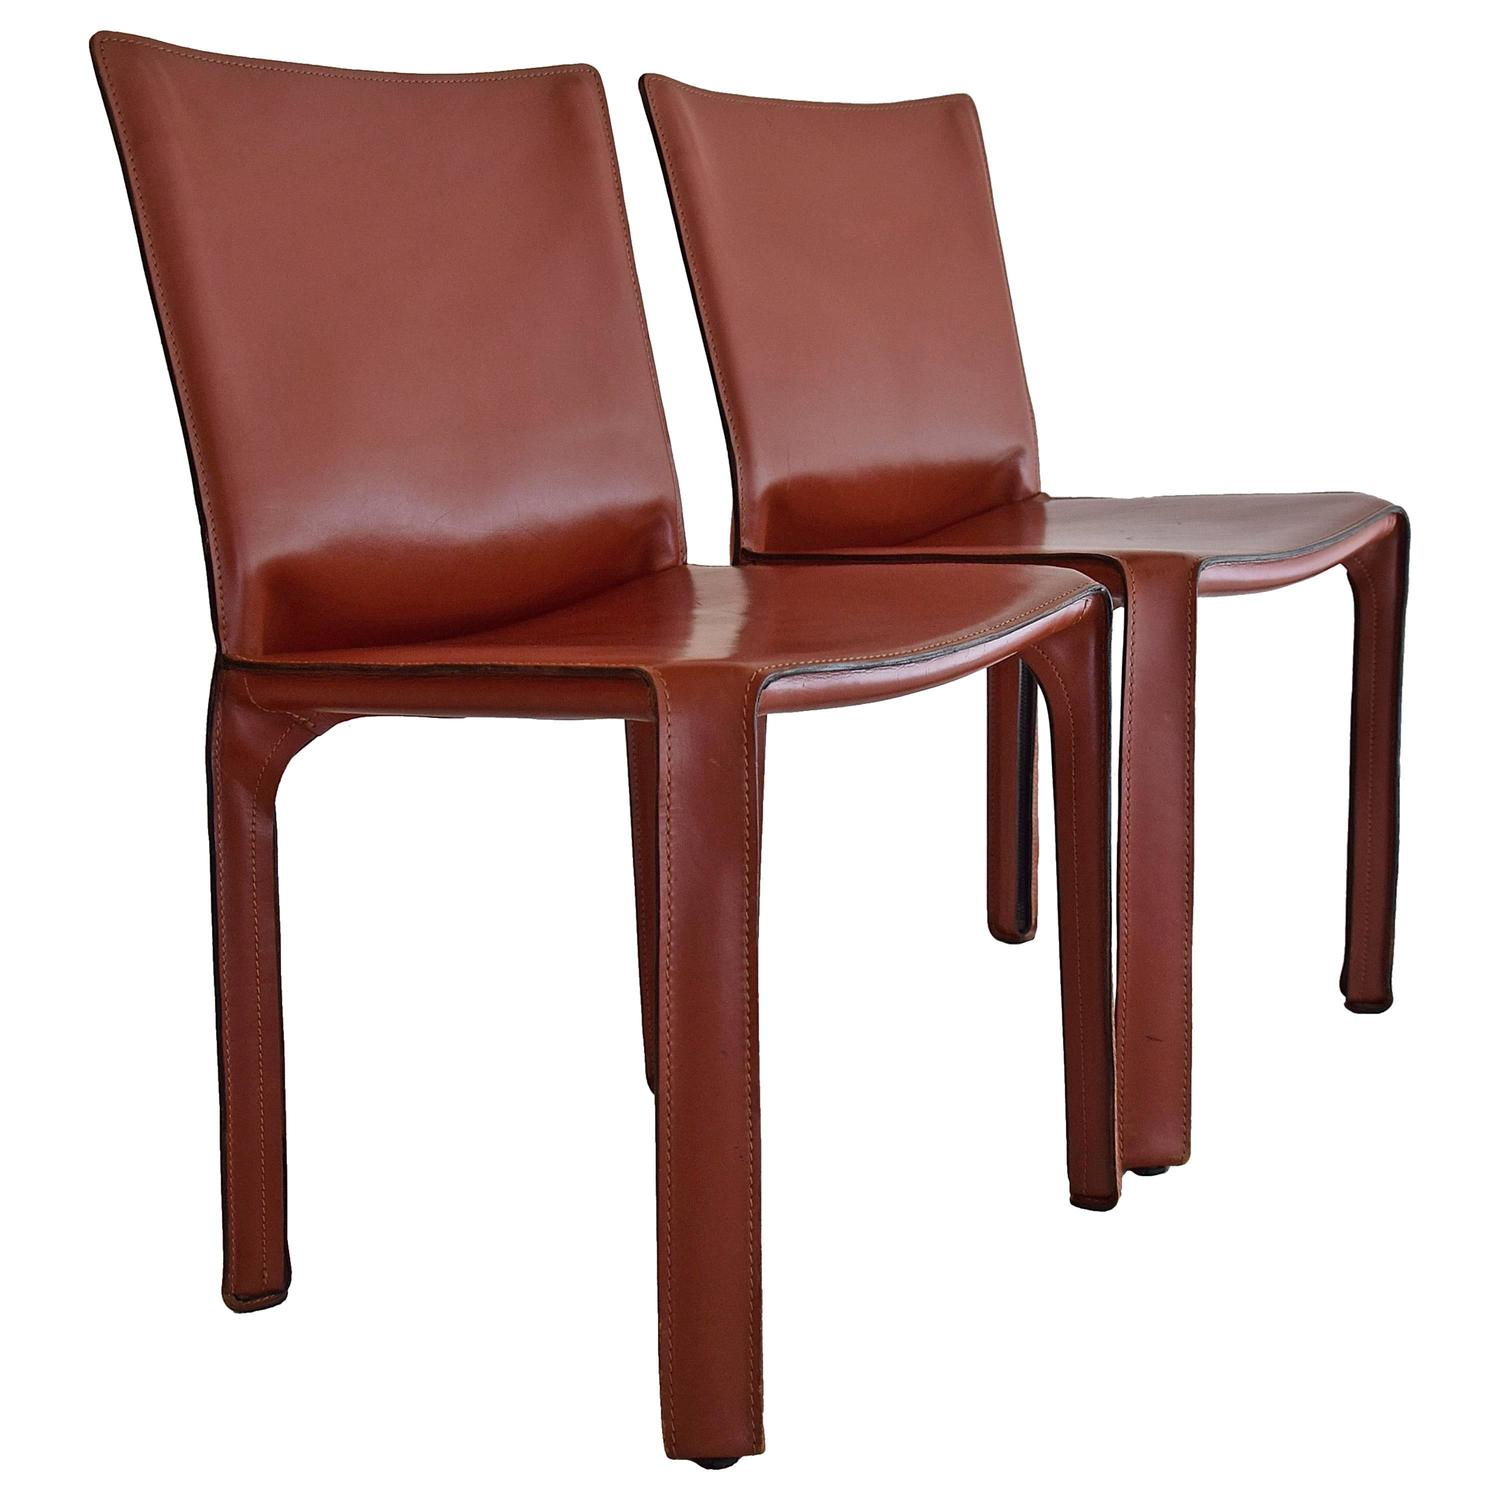 1977 CAB Chairs by Mario Bellini for Cassina at 1stdibs